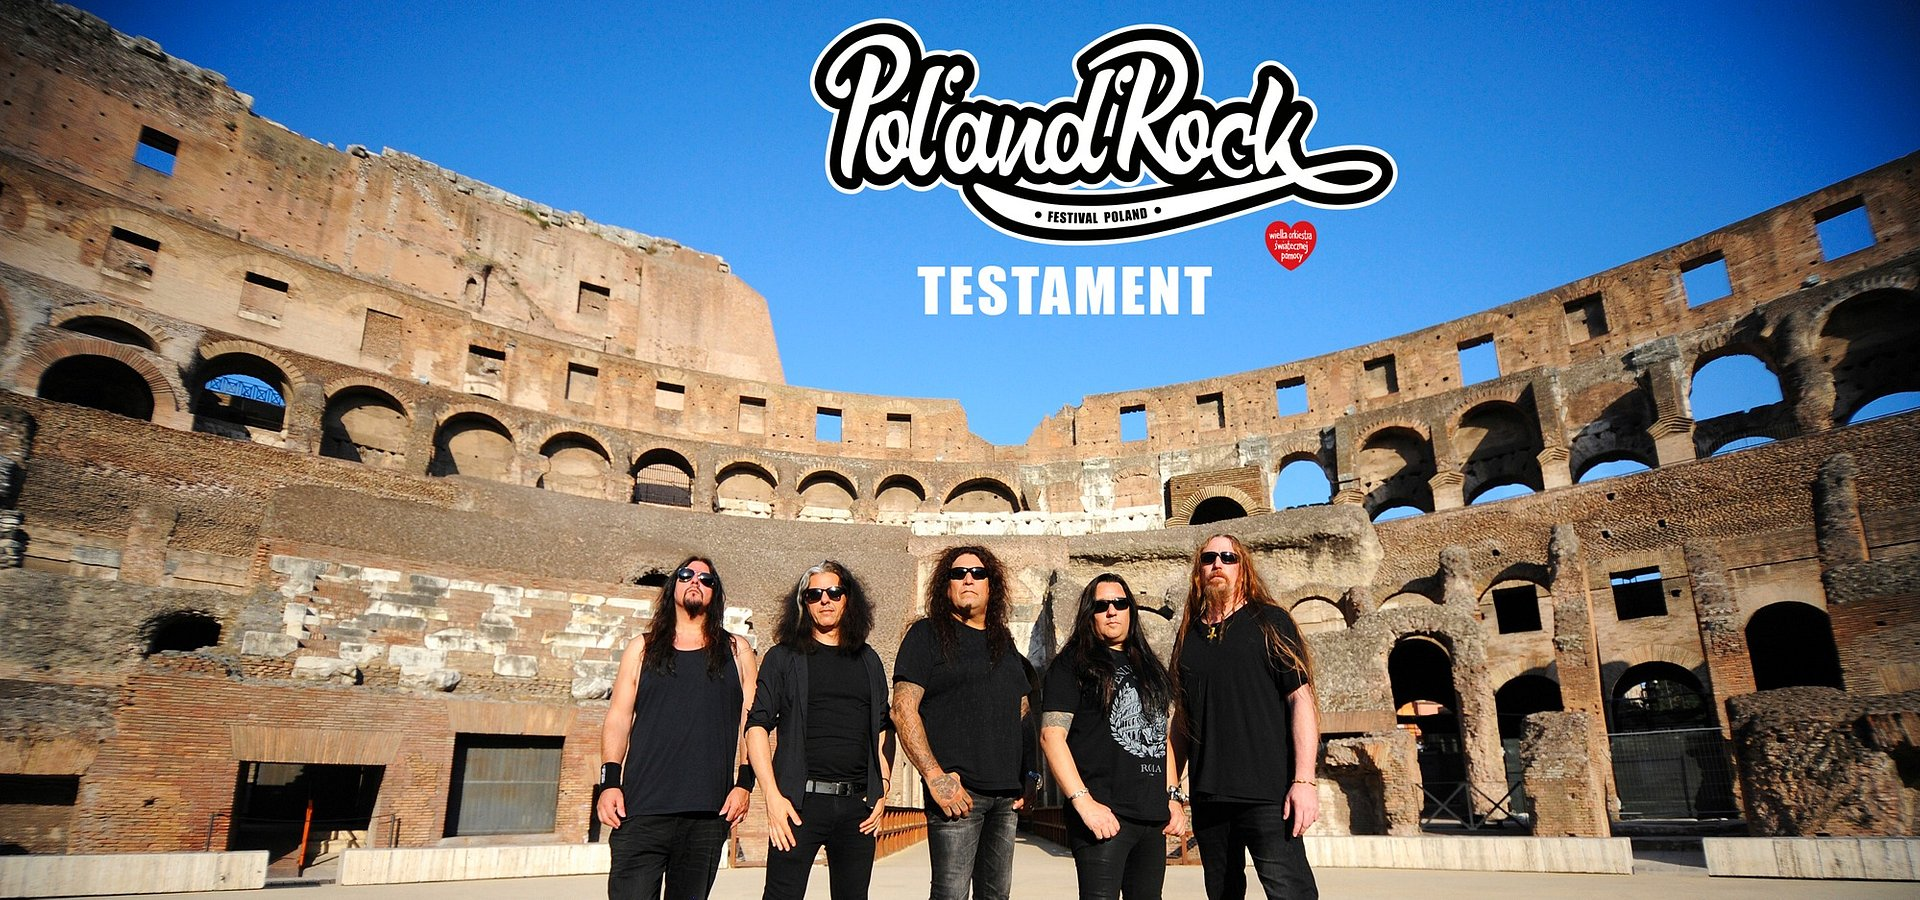 Thrash legends at Pol'and'Rock Festival